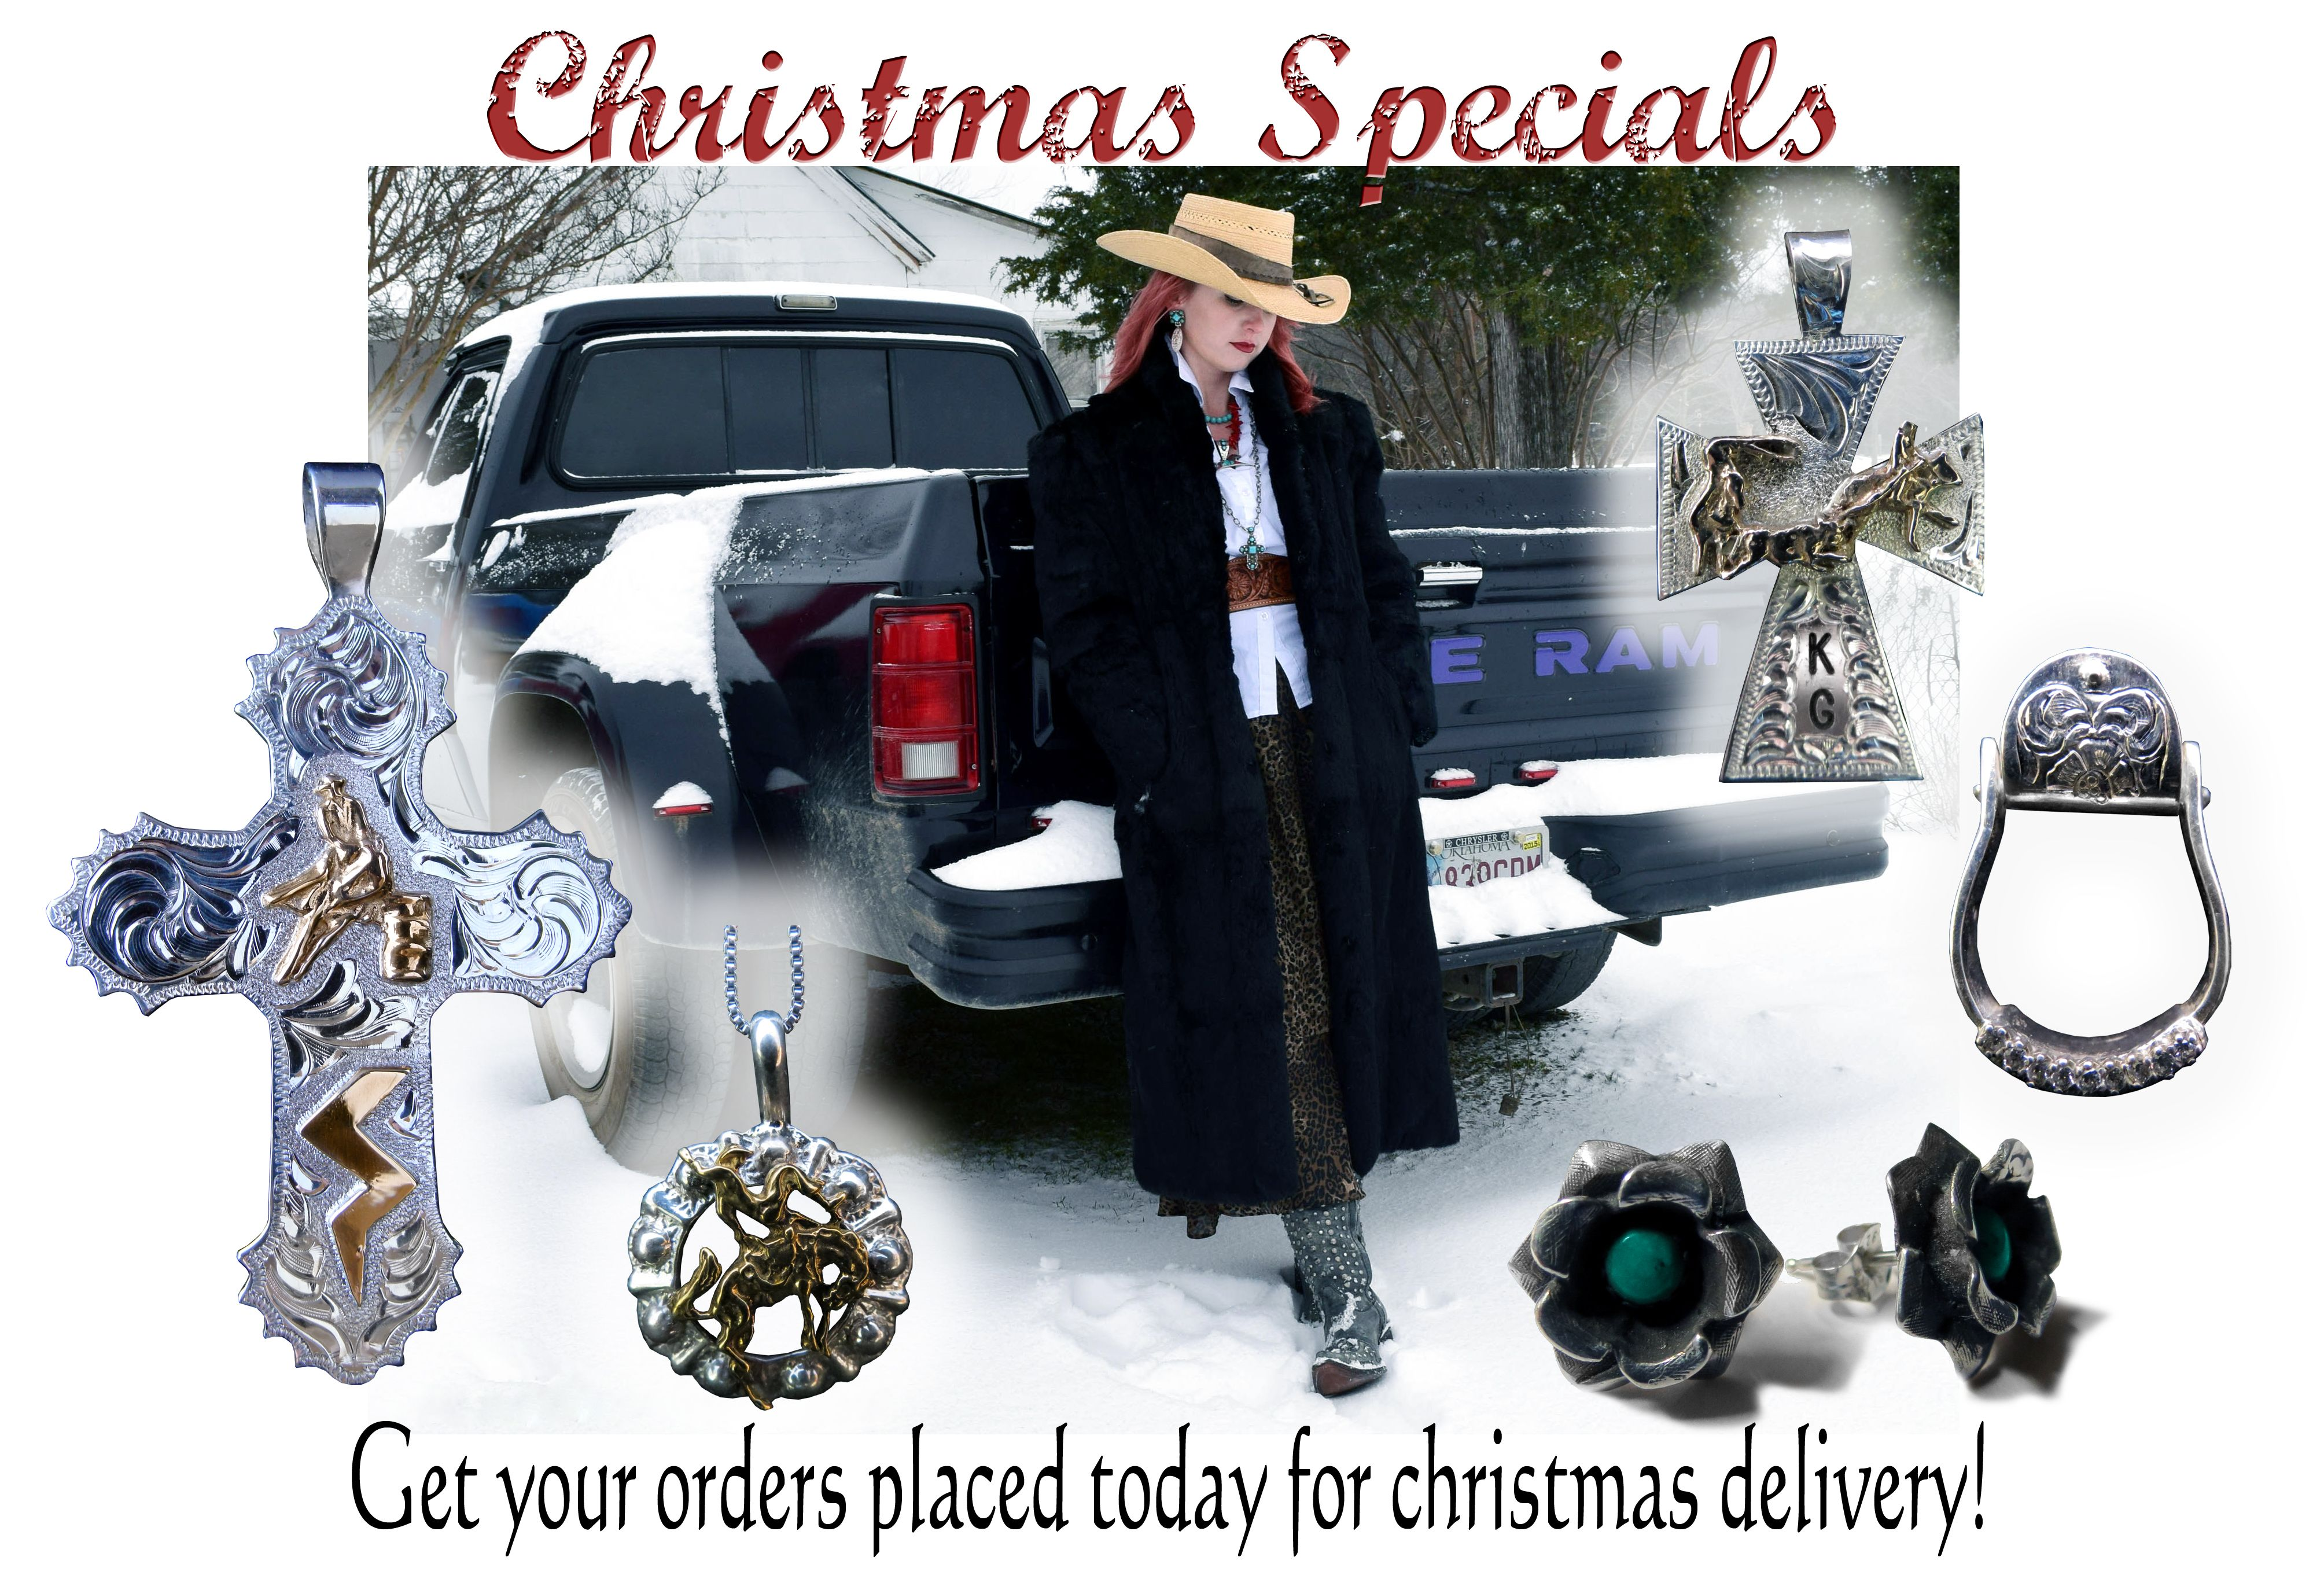 Check out our updated website! And our Christmas Sale page! www.cowboyjewelers.com